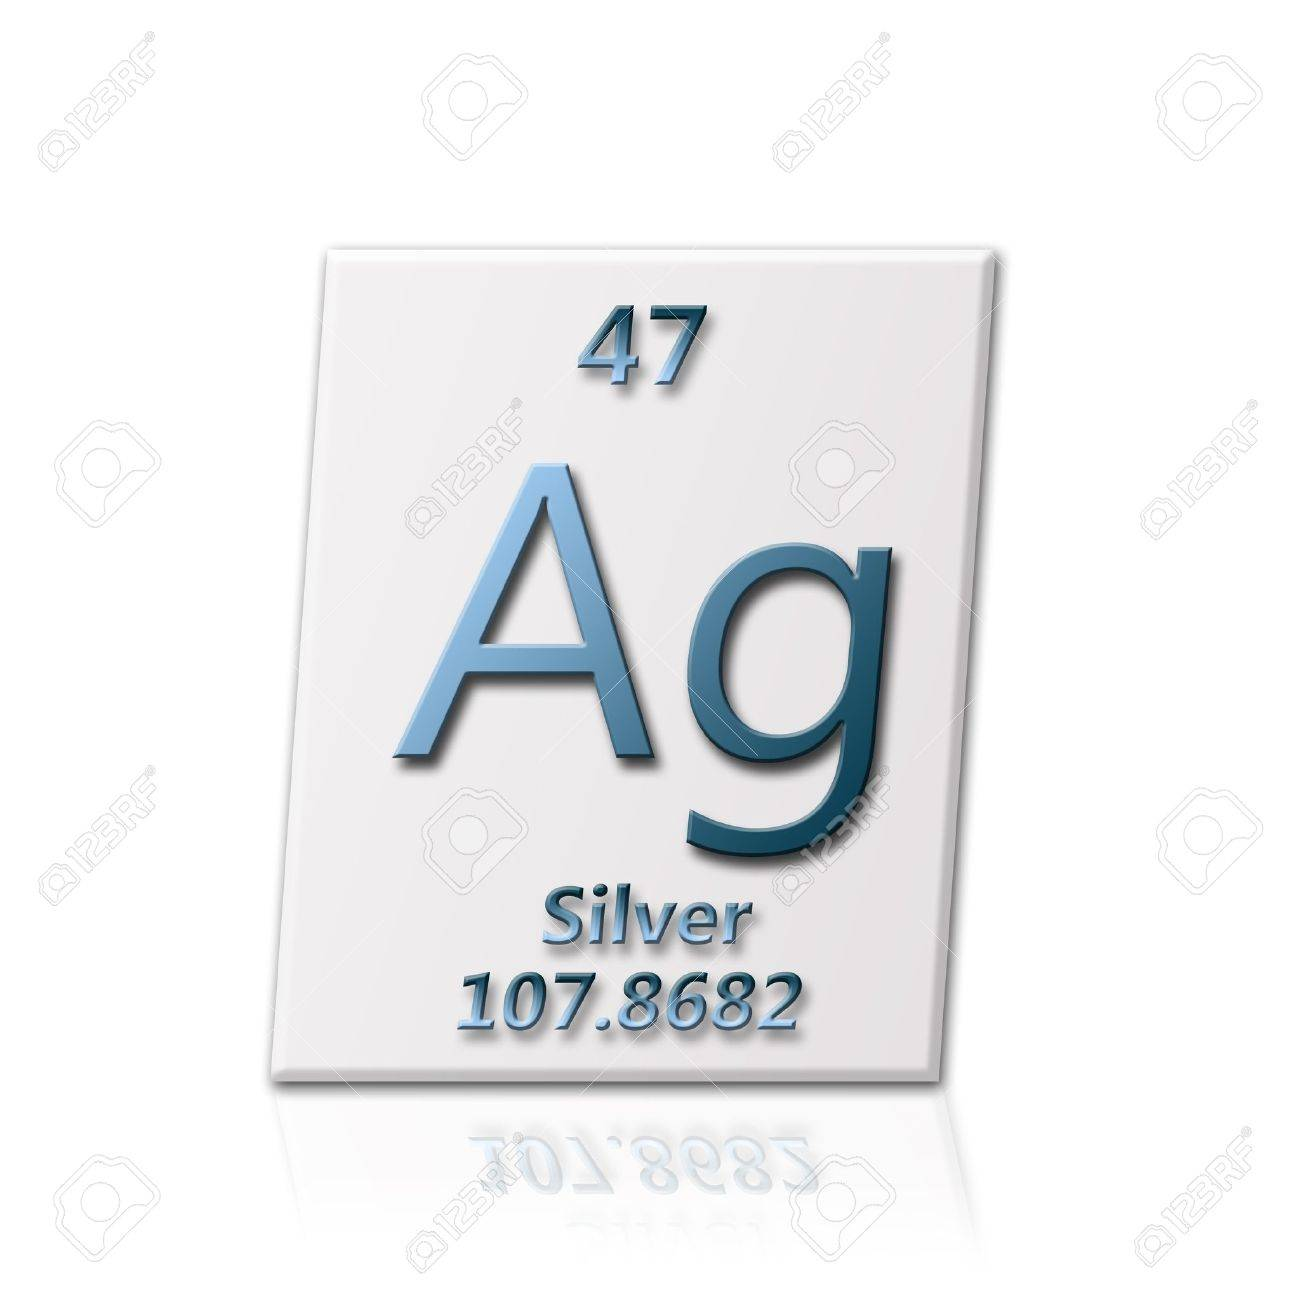 There is a chemical element silver with all information about there is a chemical element silver with all information about it stock photo 7607933 urtaz Gallery